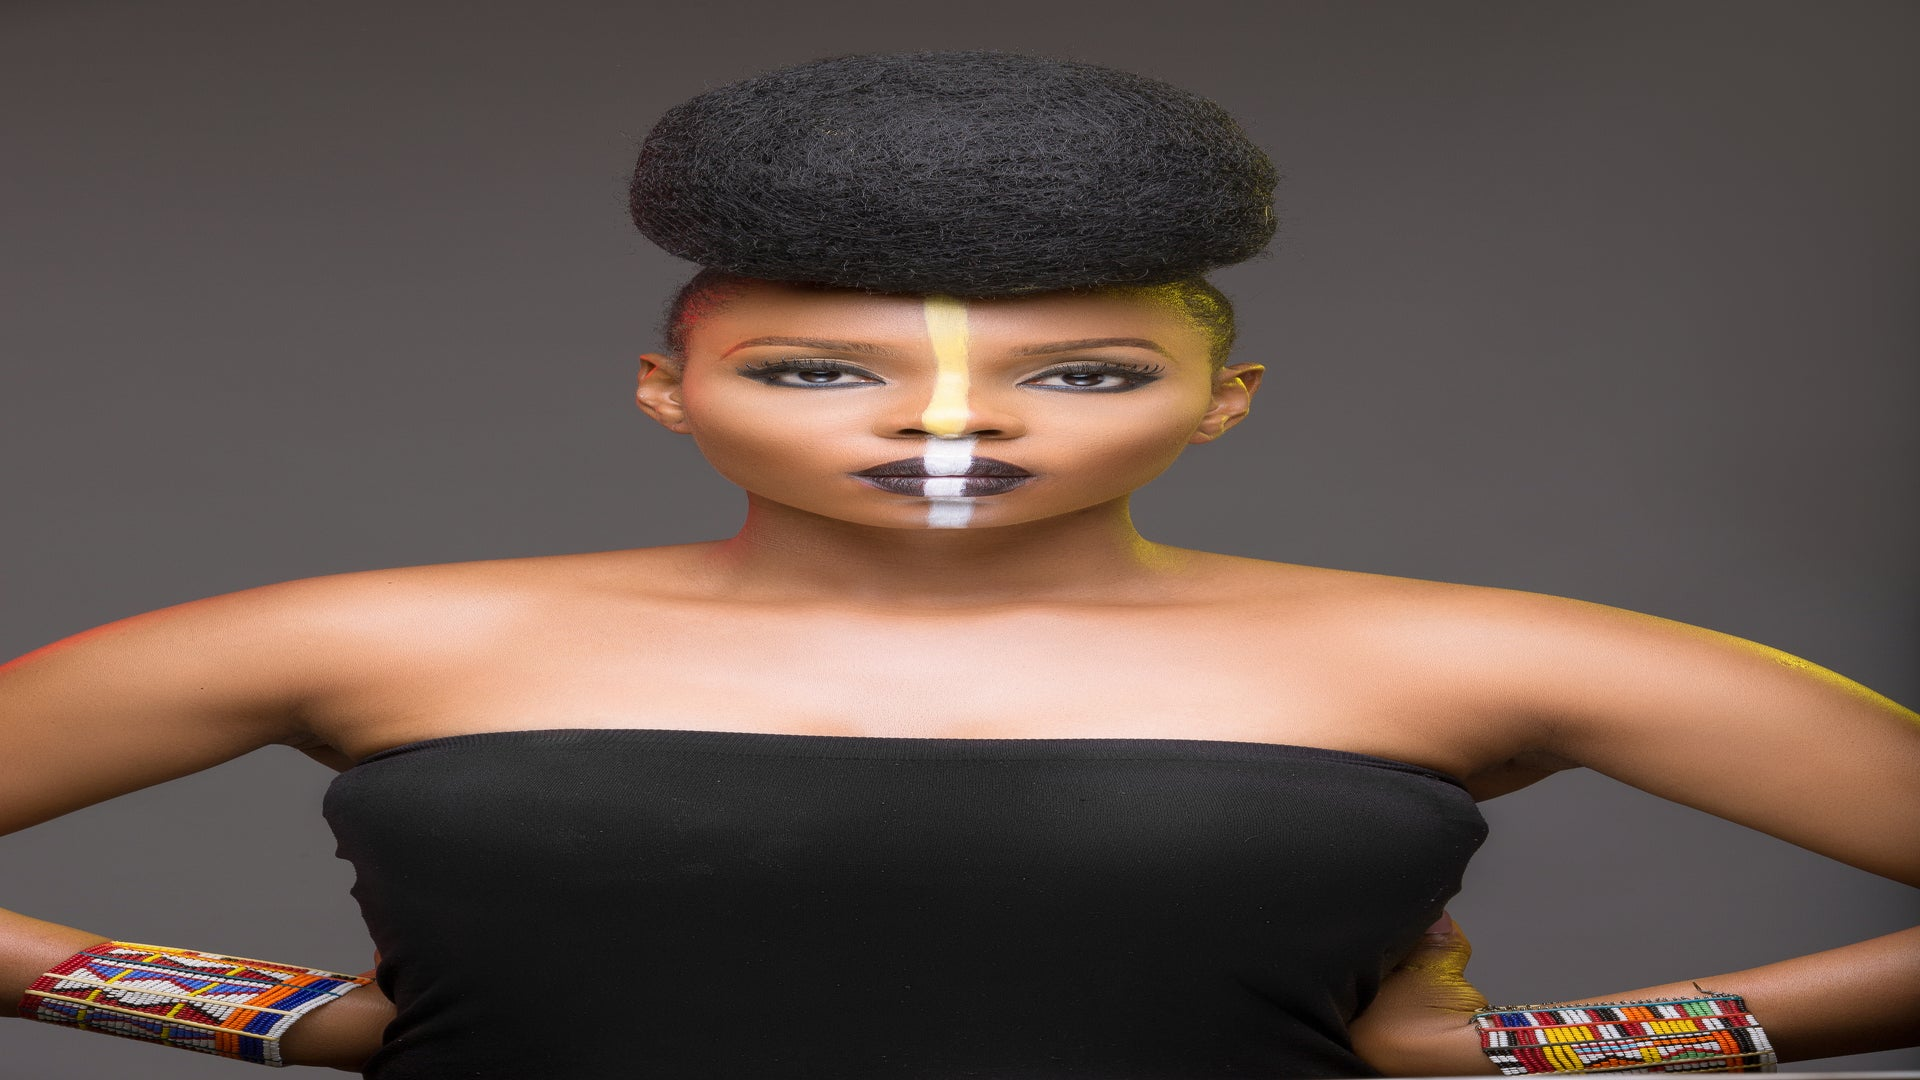 Nigeria's Yemi Alade Opens Up About Her Rise To Afropop Superstardom & Her Unique Connection With Her Fans